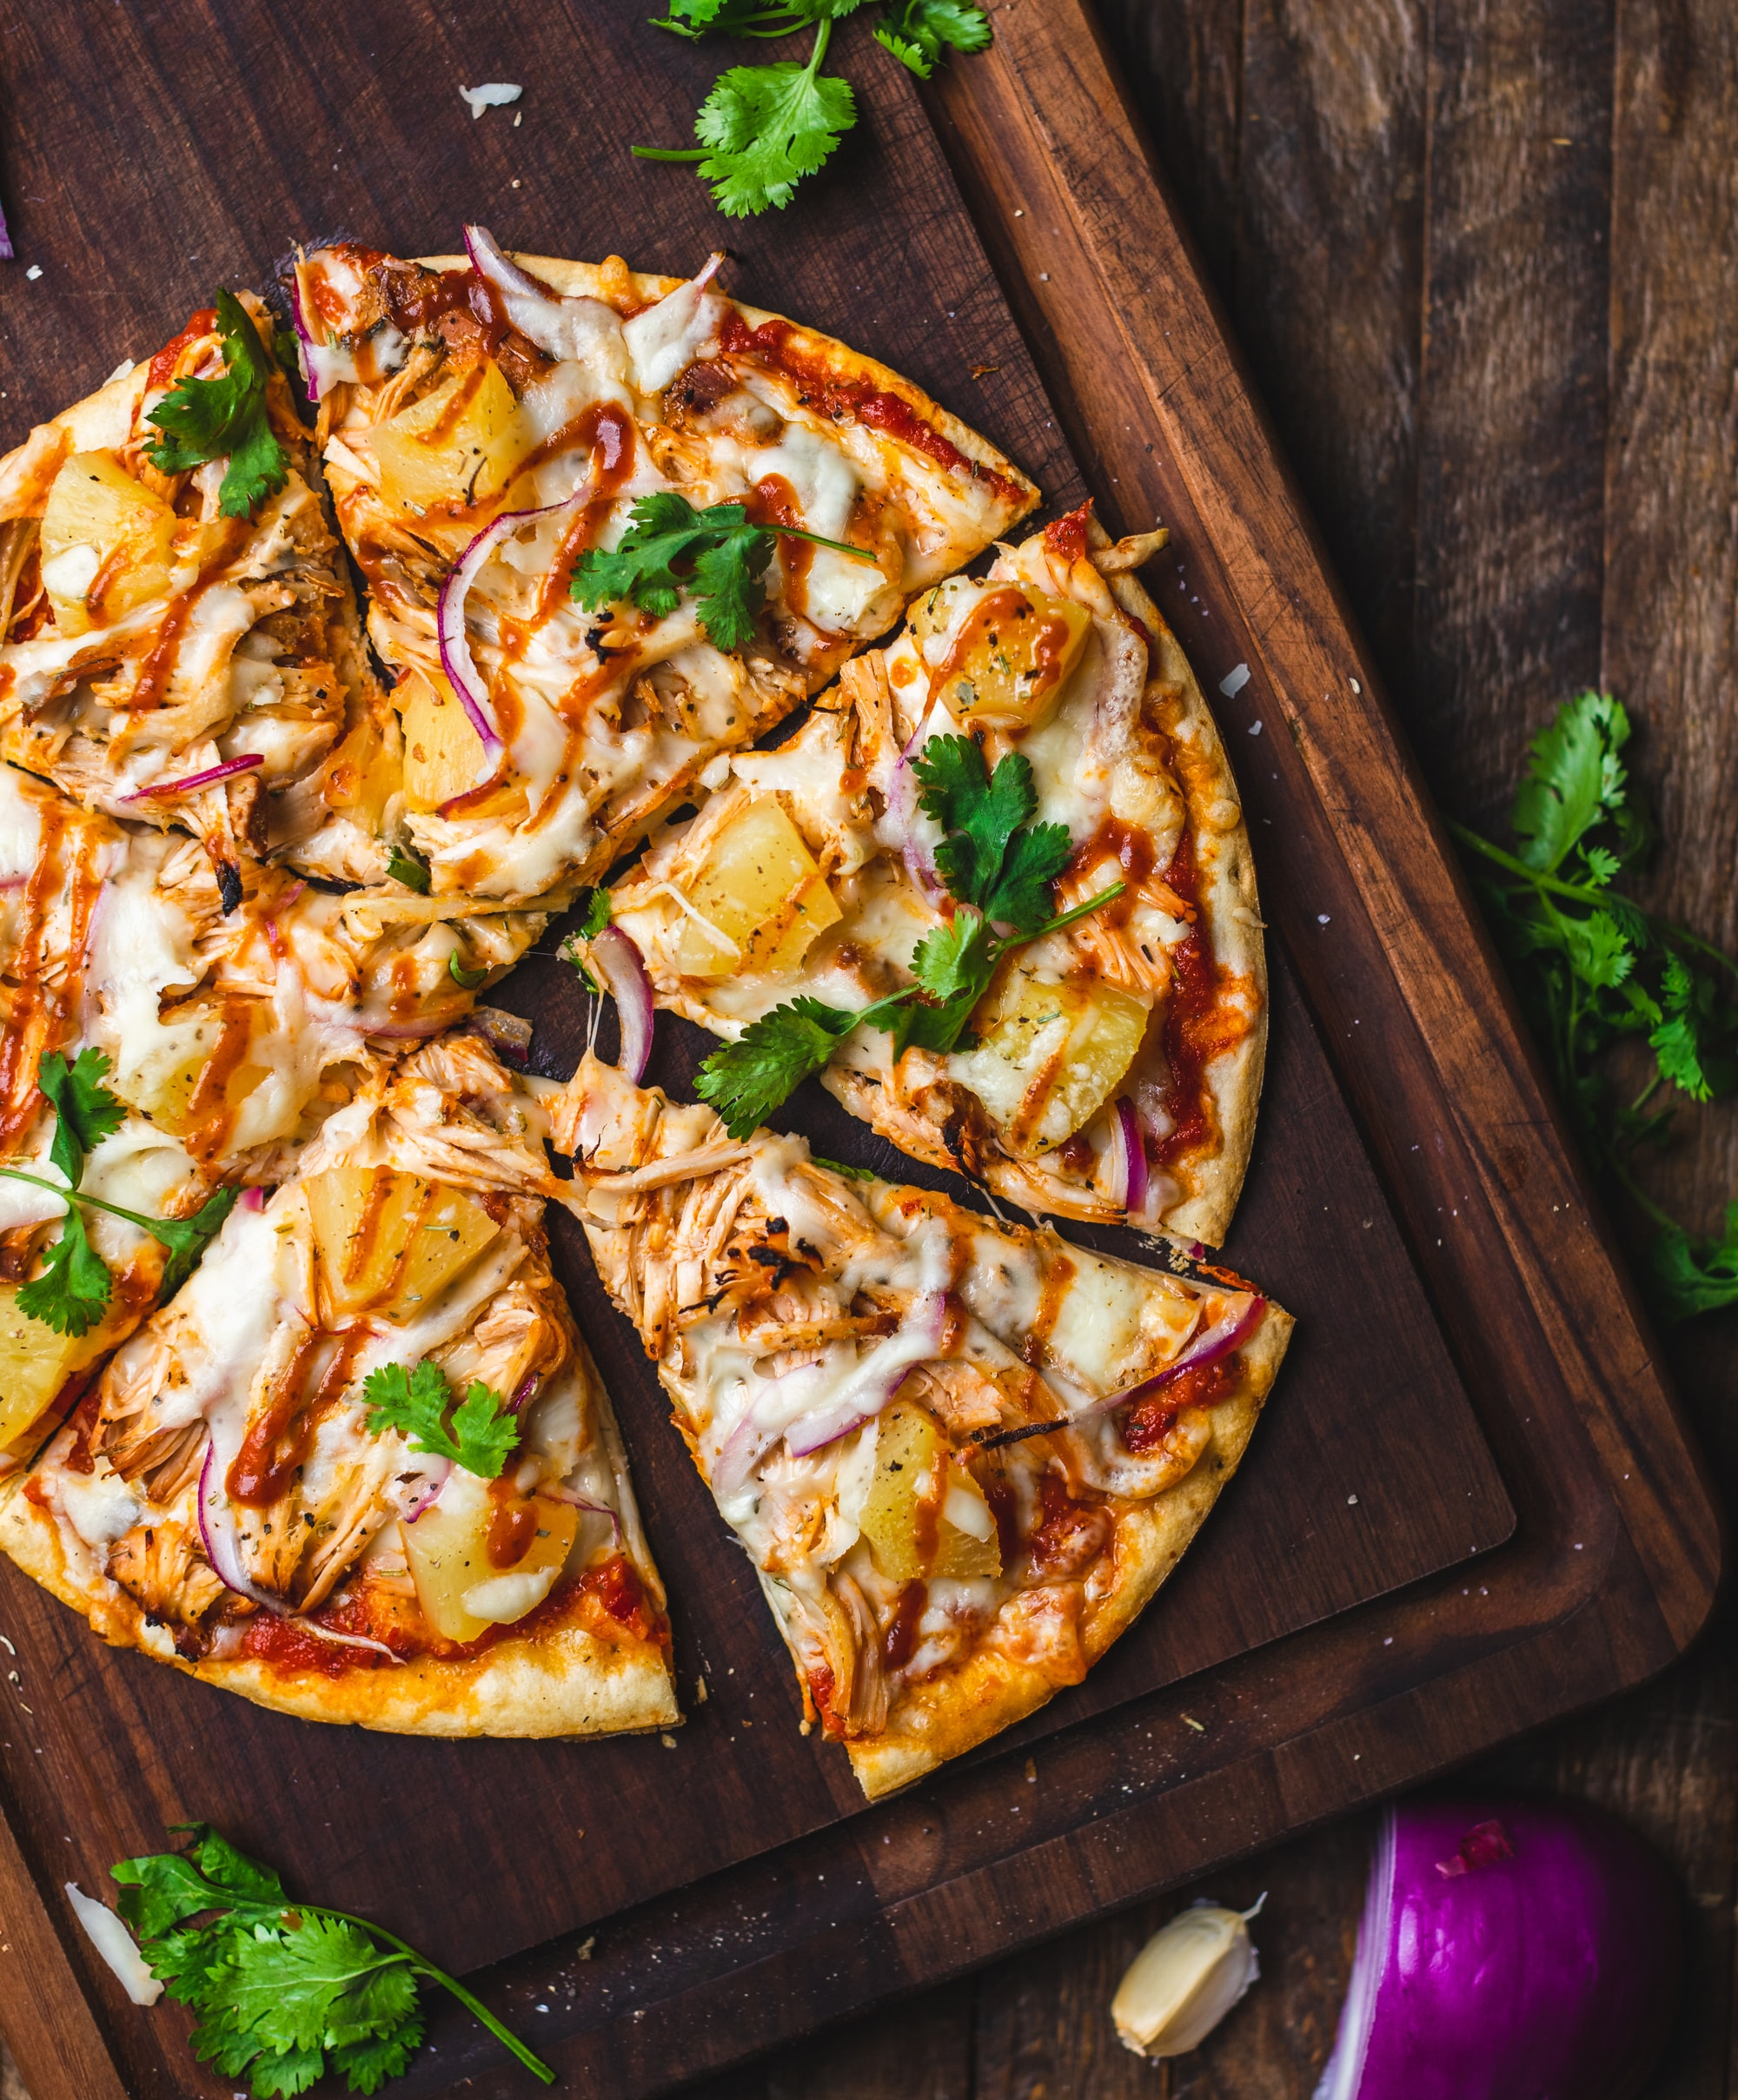 7 Delicious Vegan Pizza Recipes That Won't Make You Miss the Old Stuff ...